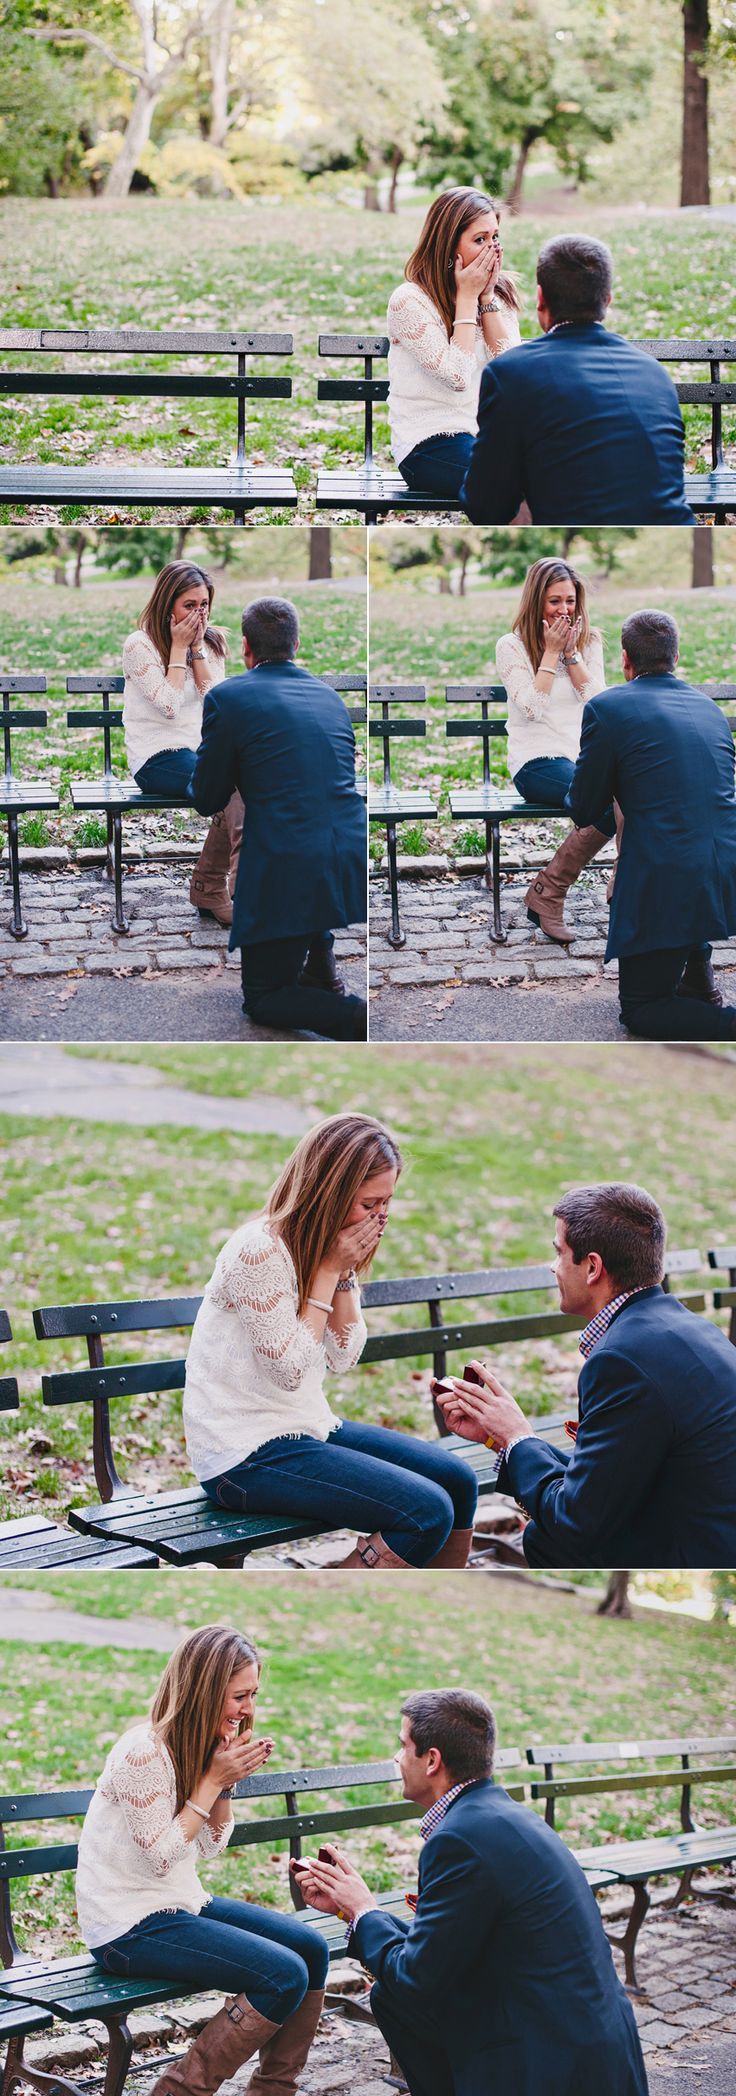 This is perfect. I've neverrrr wanted a big elaborate proposal. Just a beautiful day and a park bench.